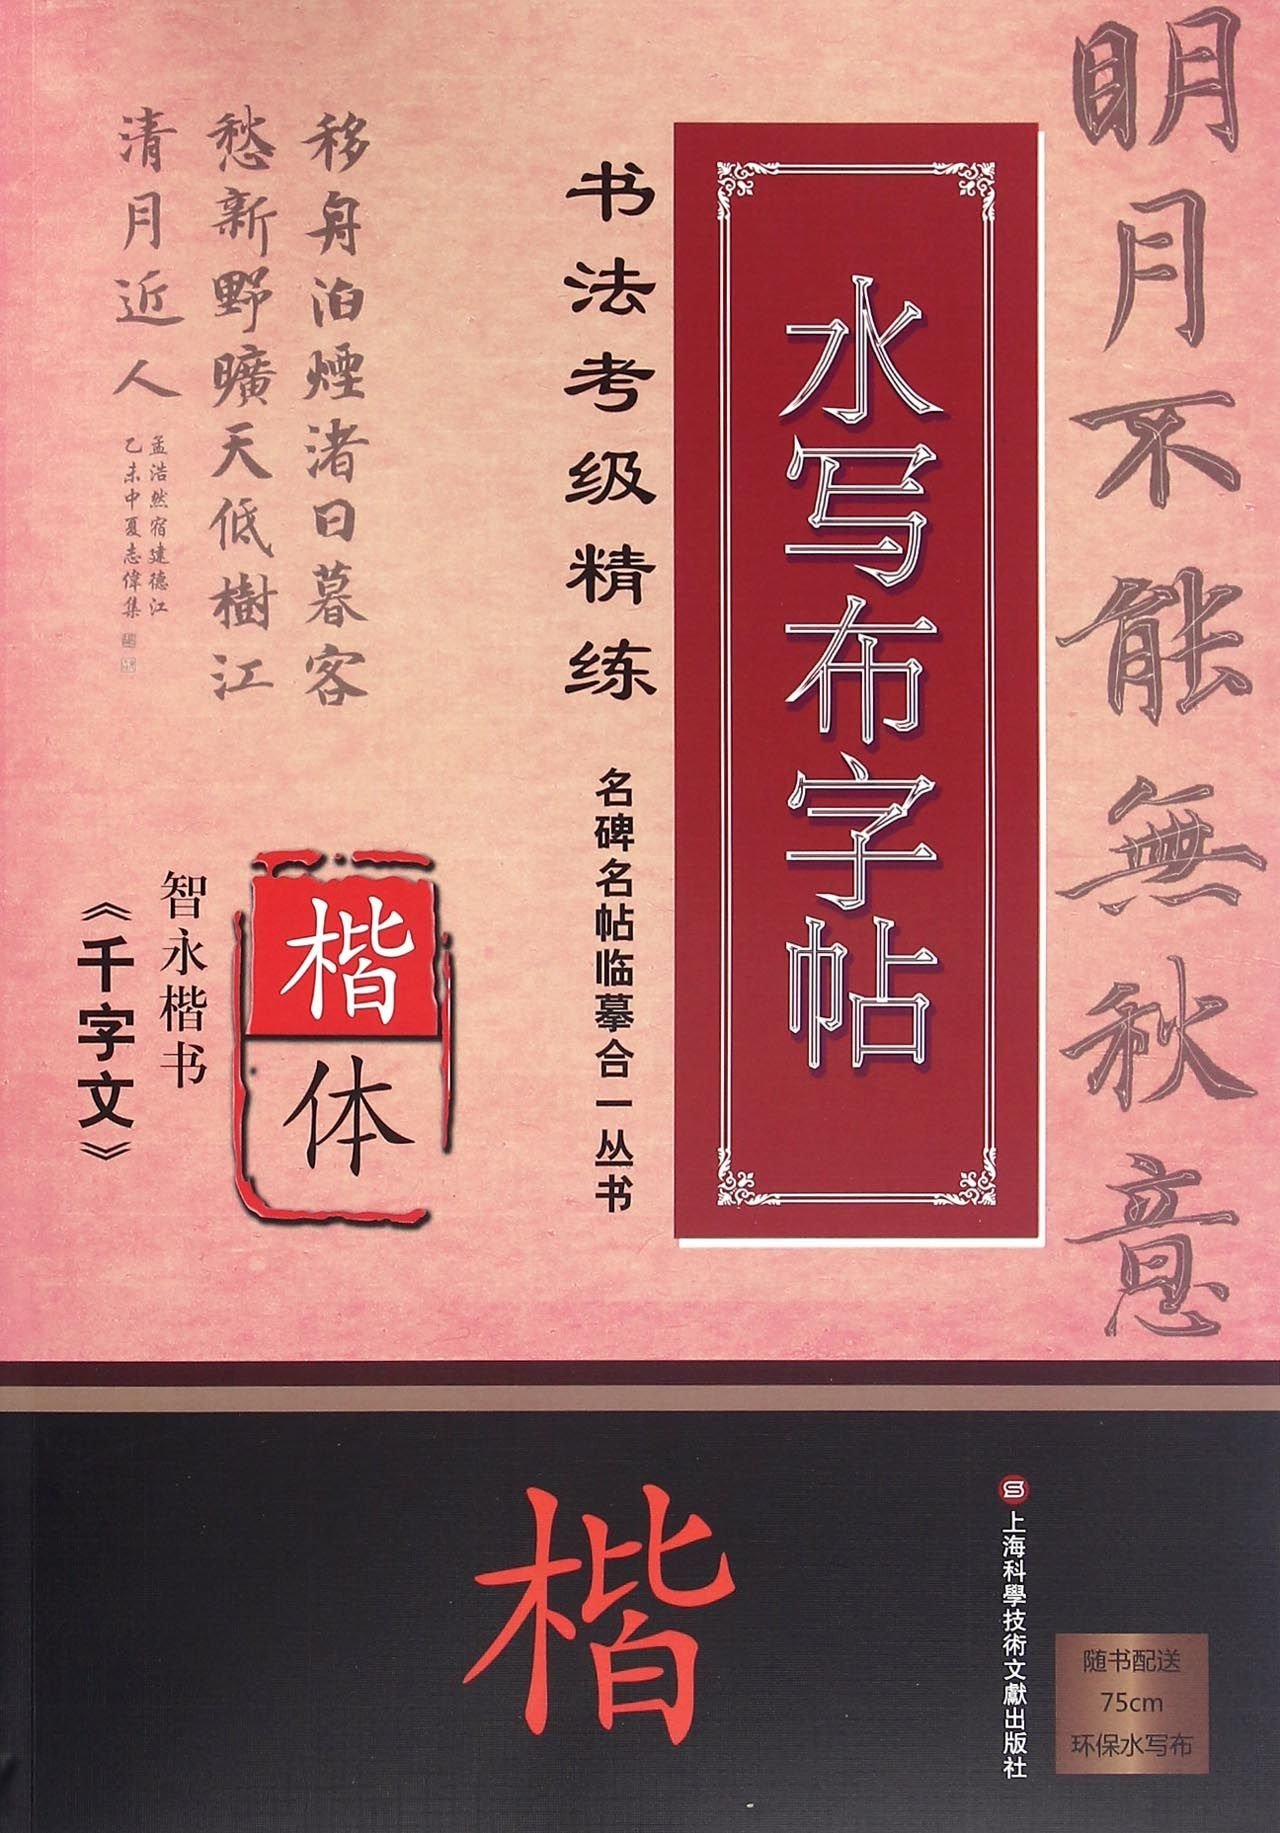 Zhi Yong's Thousand Character Classic in Regular Script (Water Cloth Copybook for Regular Script Calligraphy Level Exam Training) / Famous Stele Inscription Tracing Series (Chinese Edition) ebook